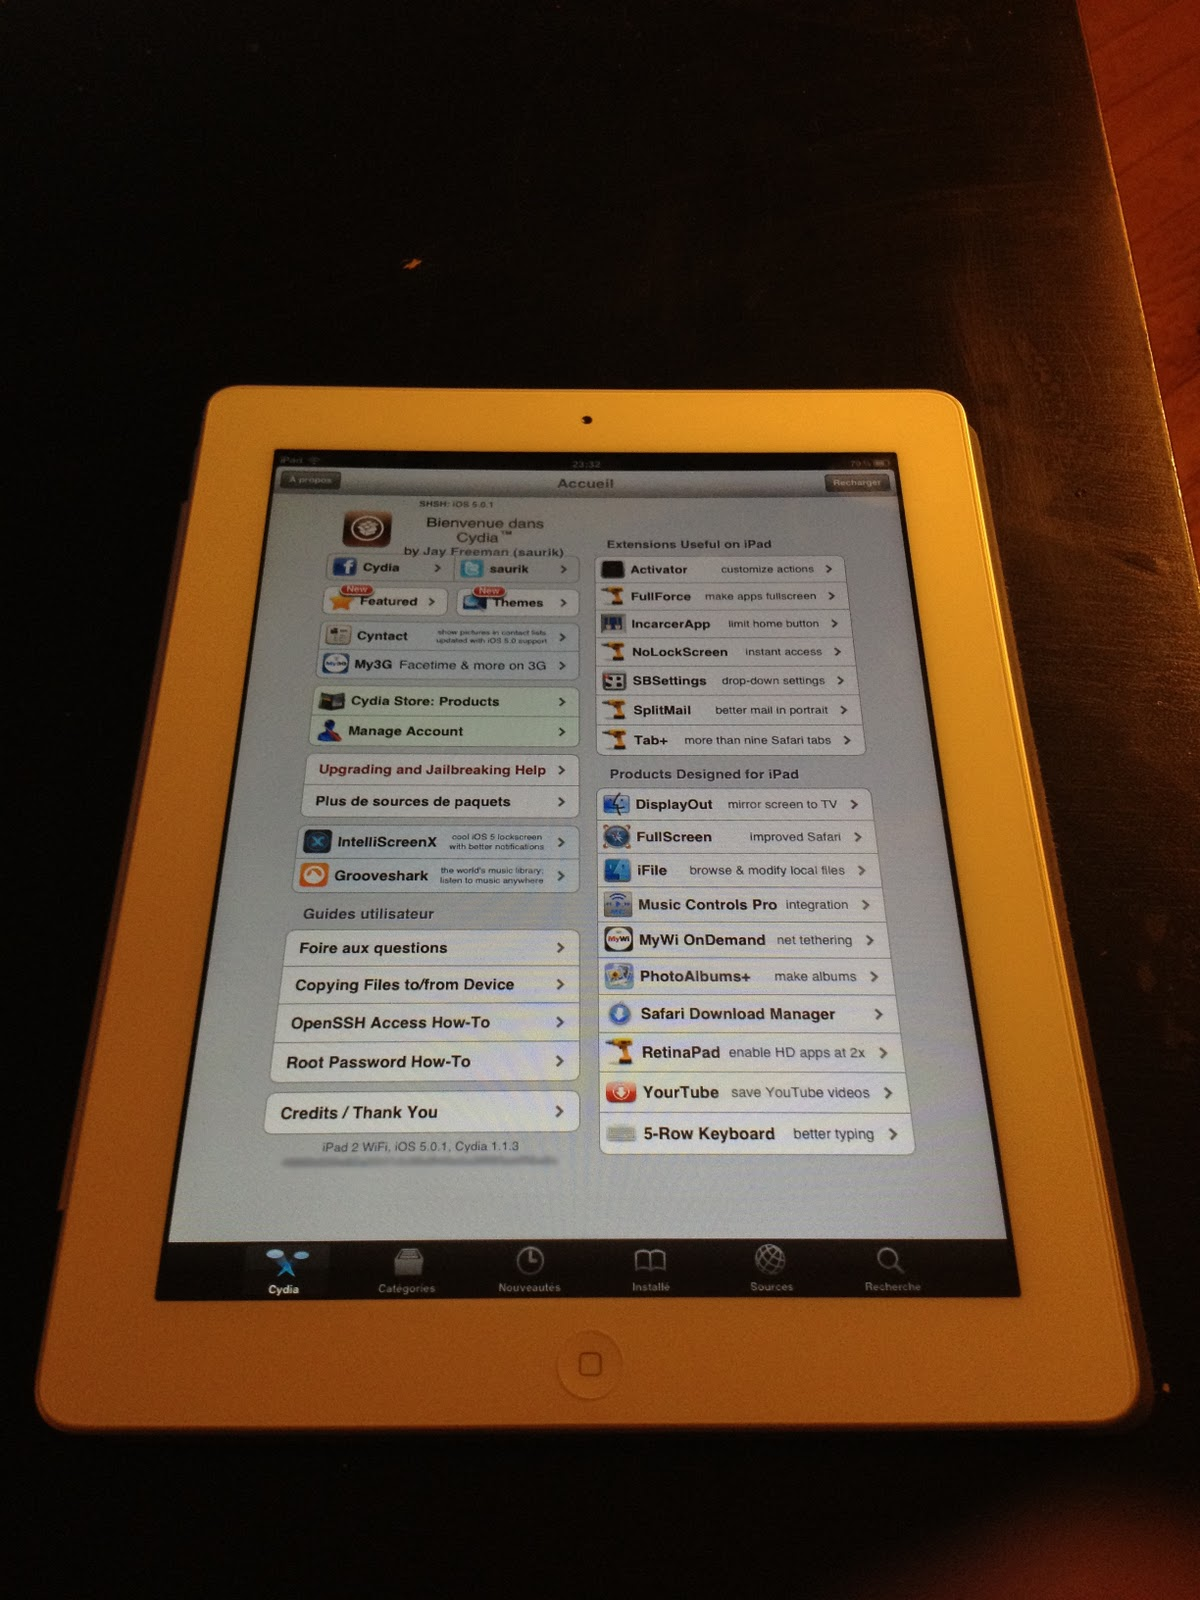 iPad 2 Jailbreak untethered screenshoot